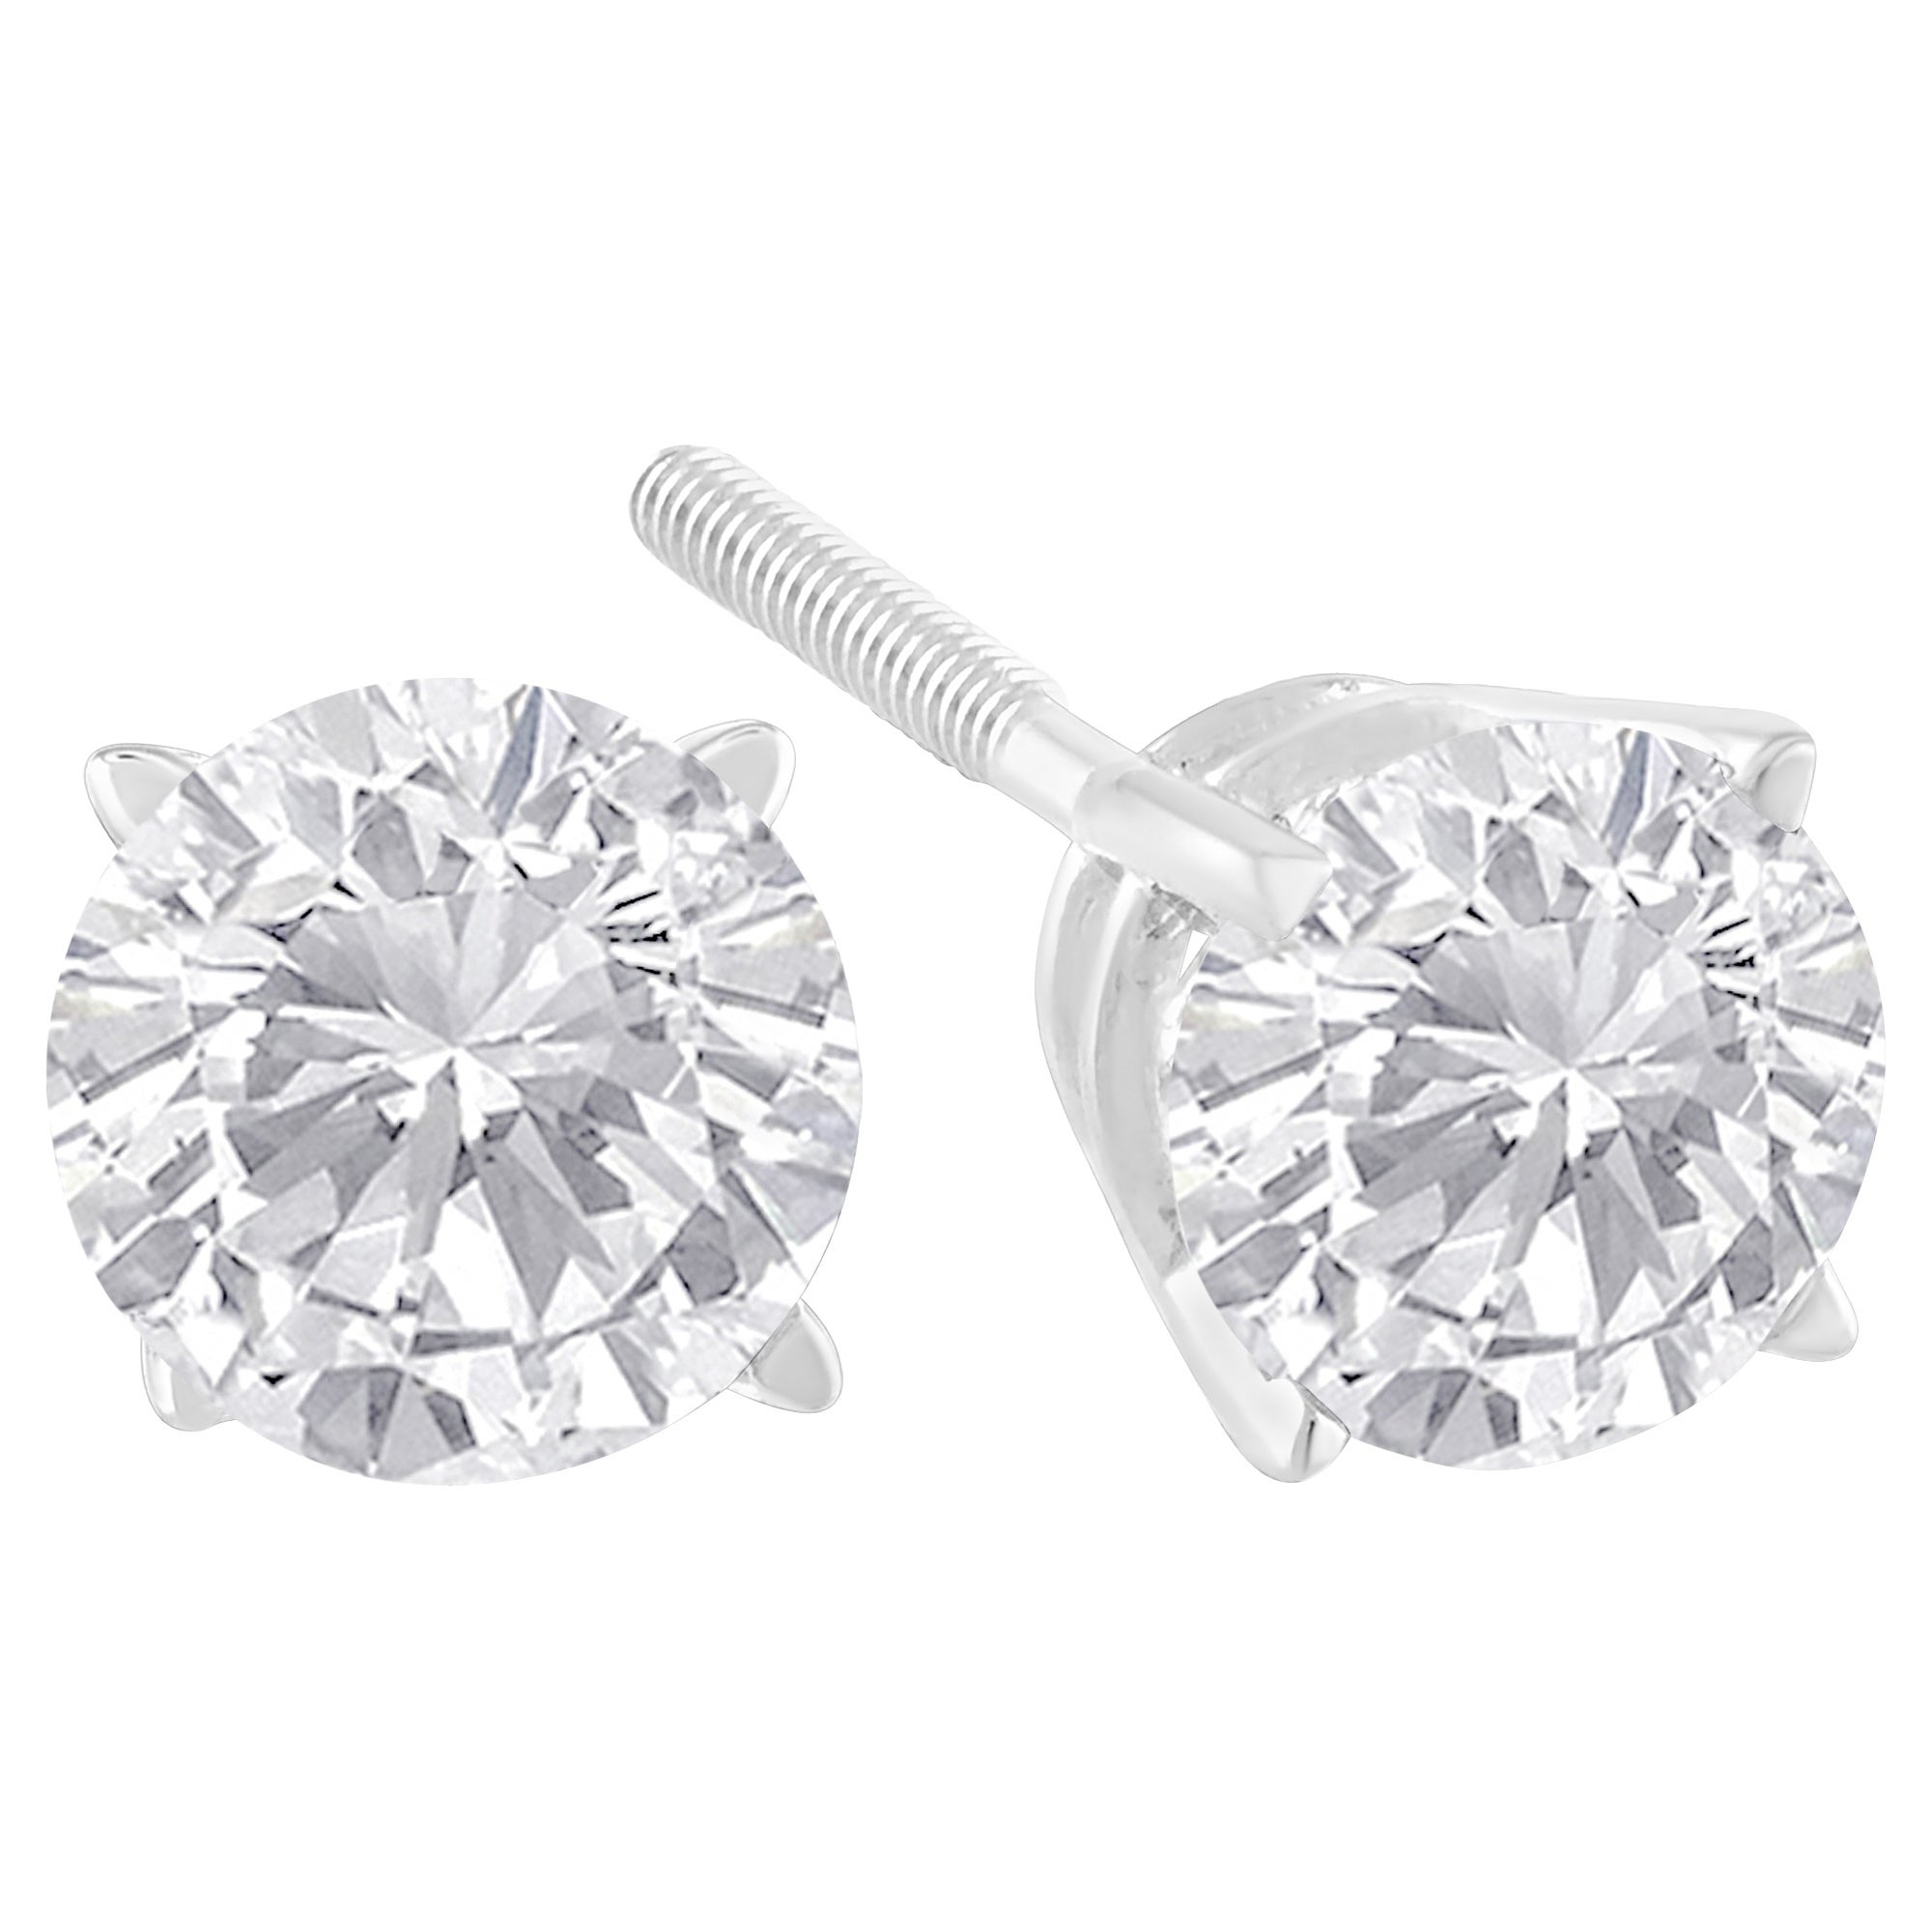 better products mullen diamond jewelry stud round quality solitaire earrings